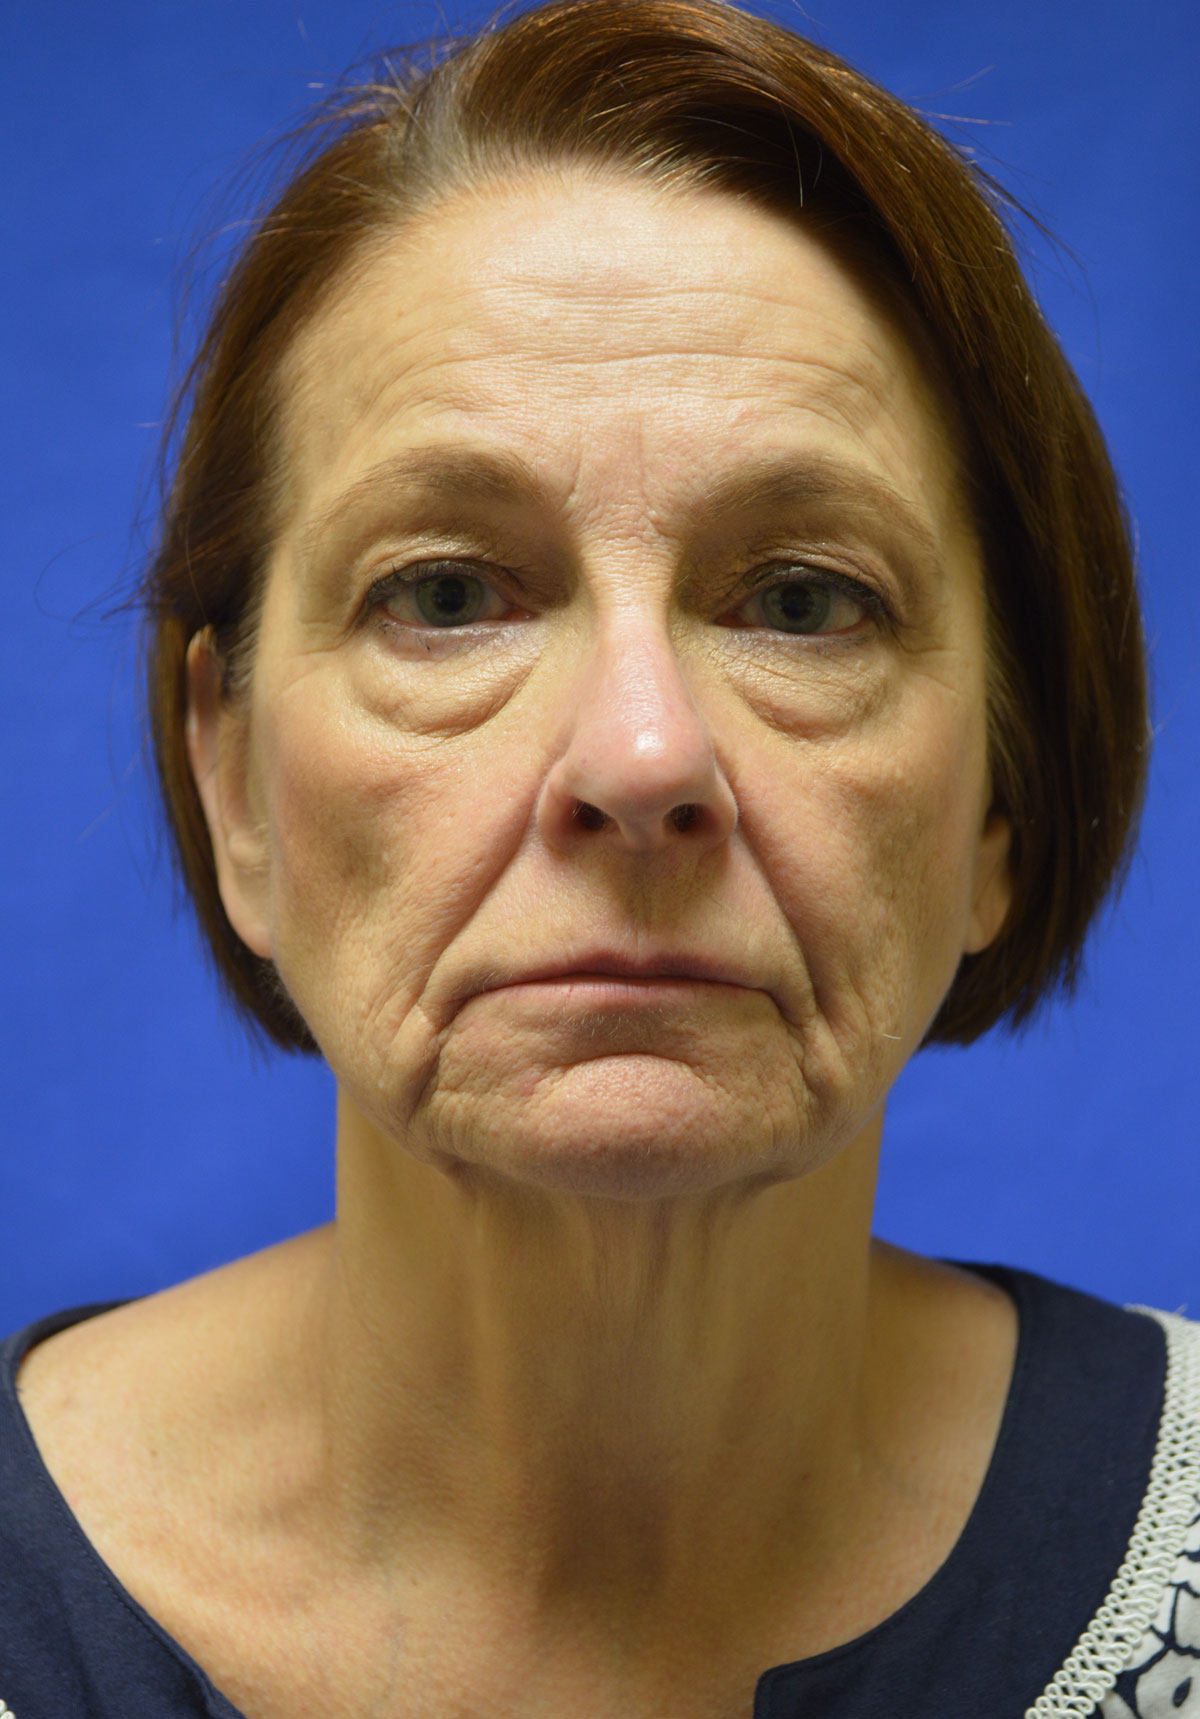 FaceLift-Shewmake-Before.jpg